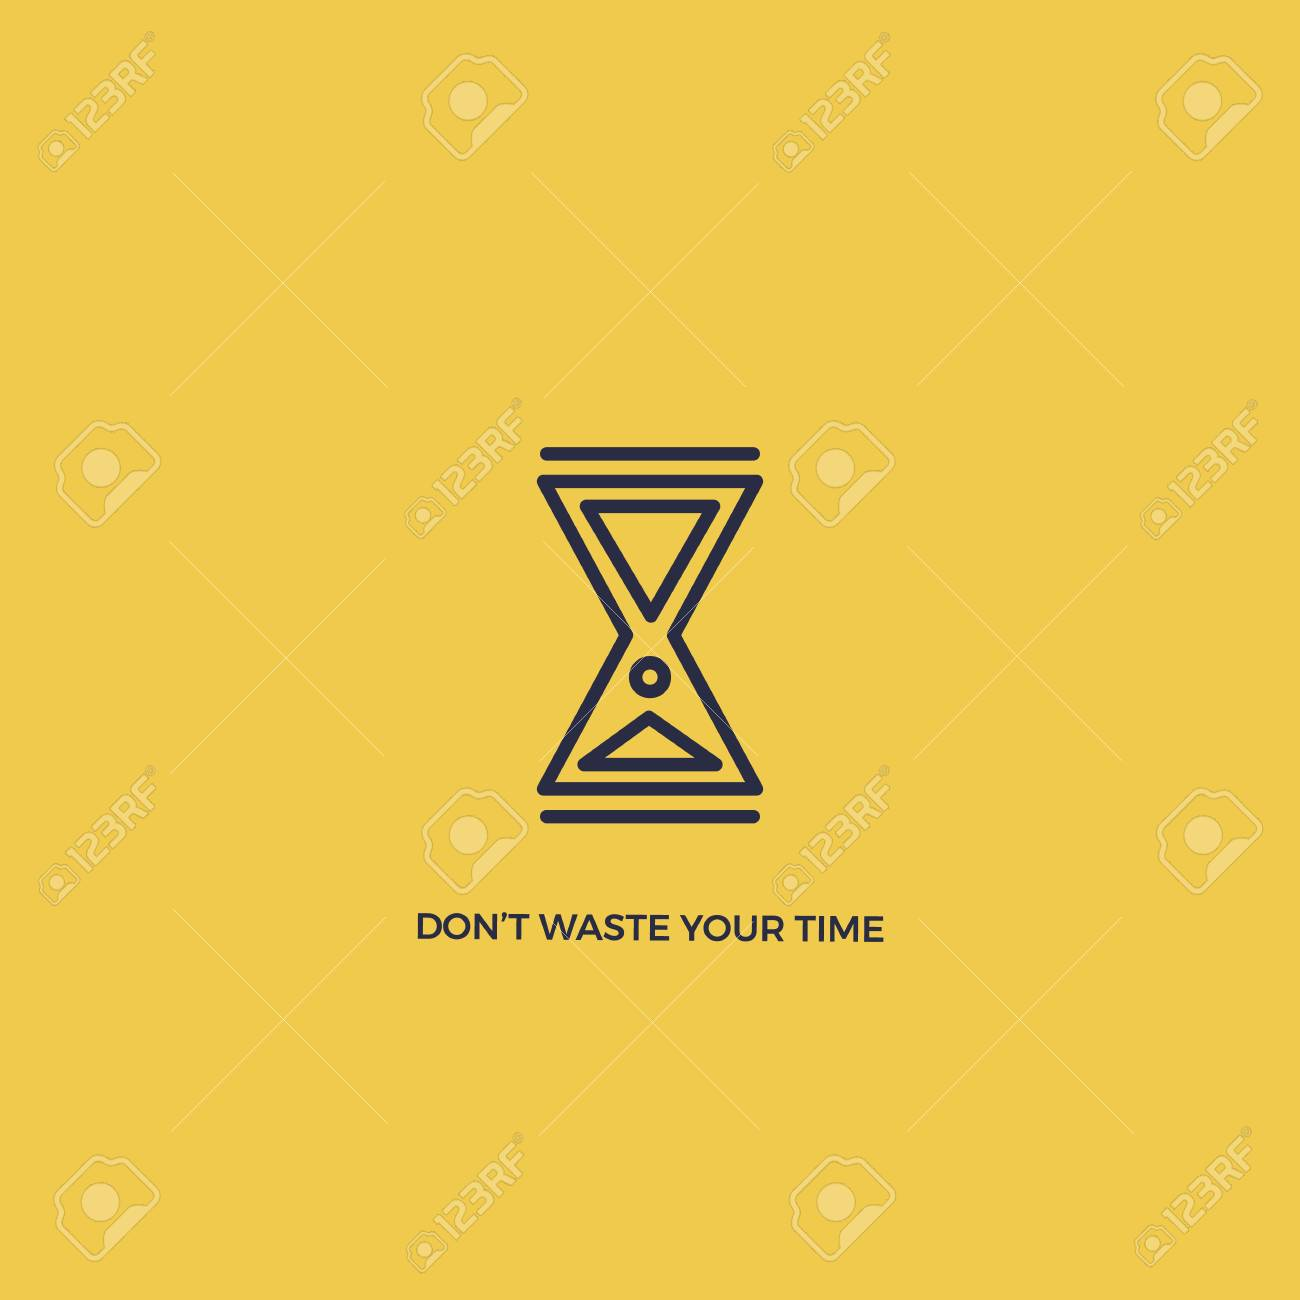 ed6474cd1b7 Do not waste your time vector poster. Minimalism with Hourglass Stock  Vector - 95088091